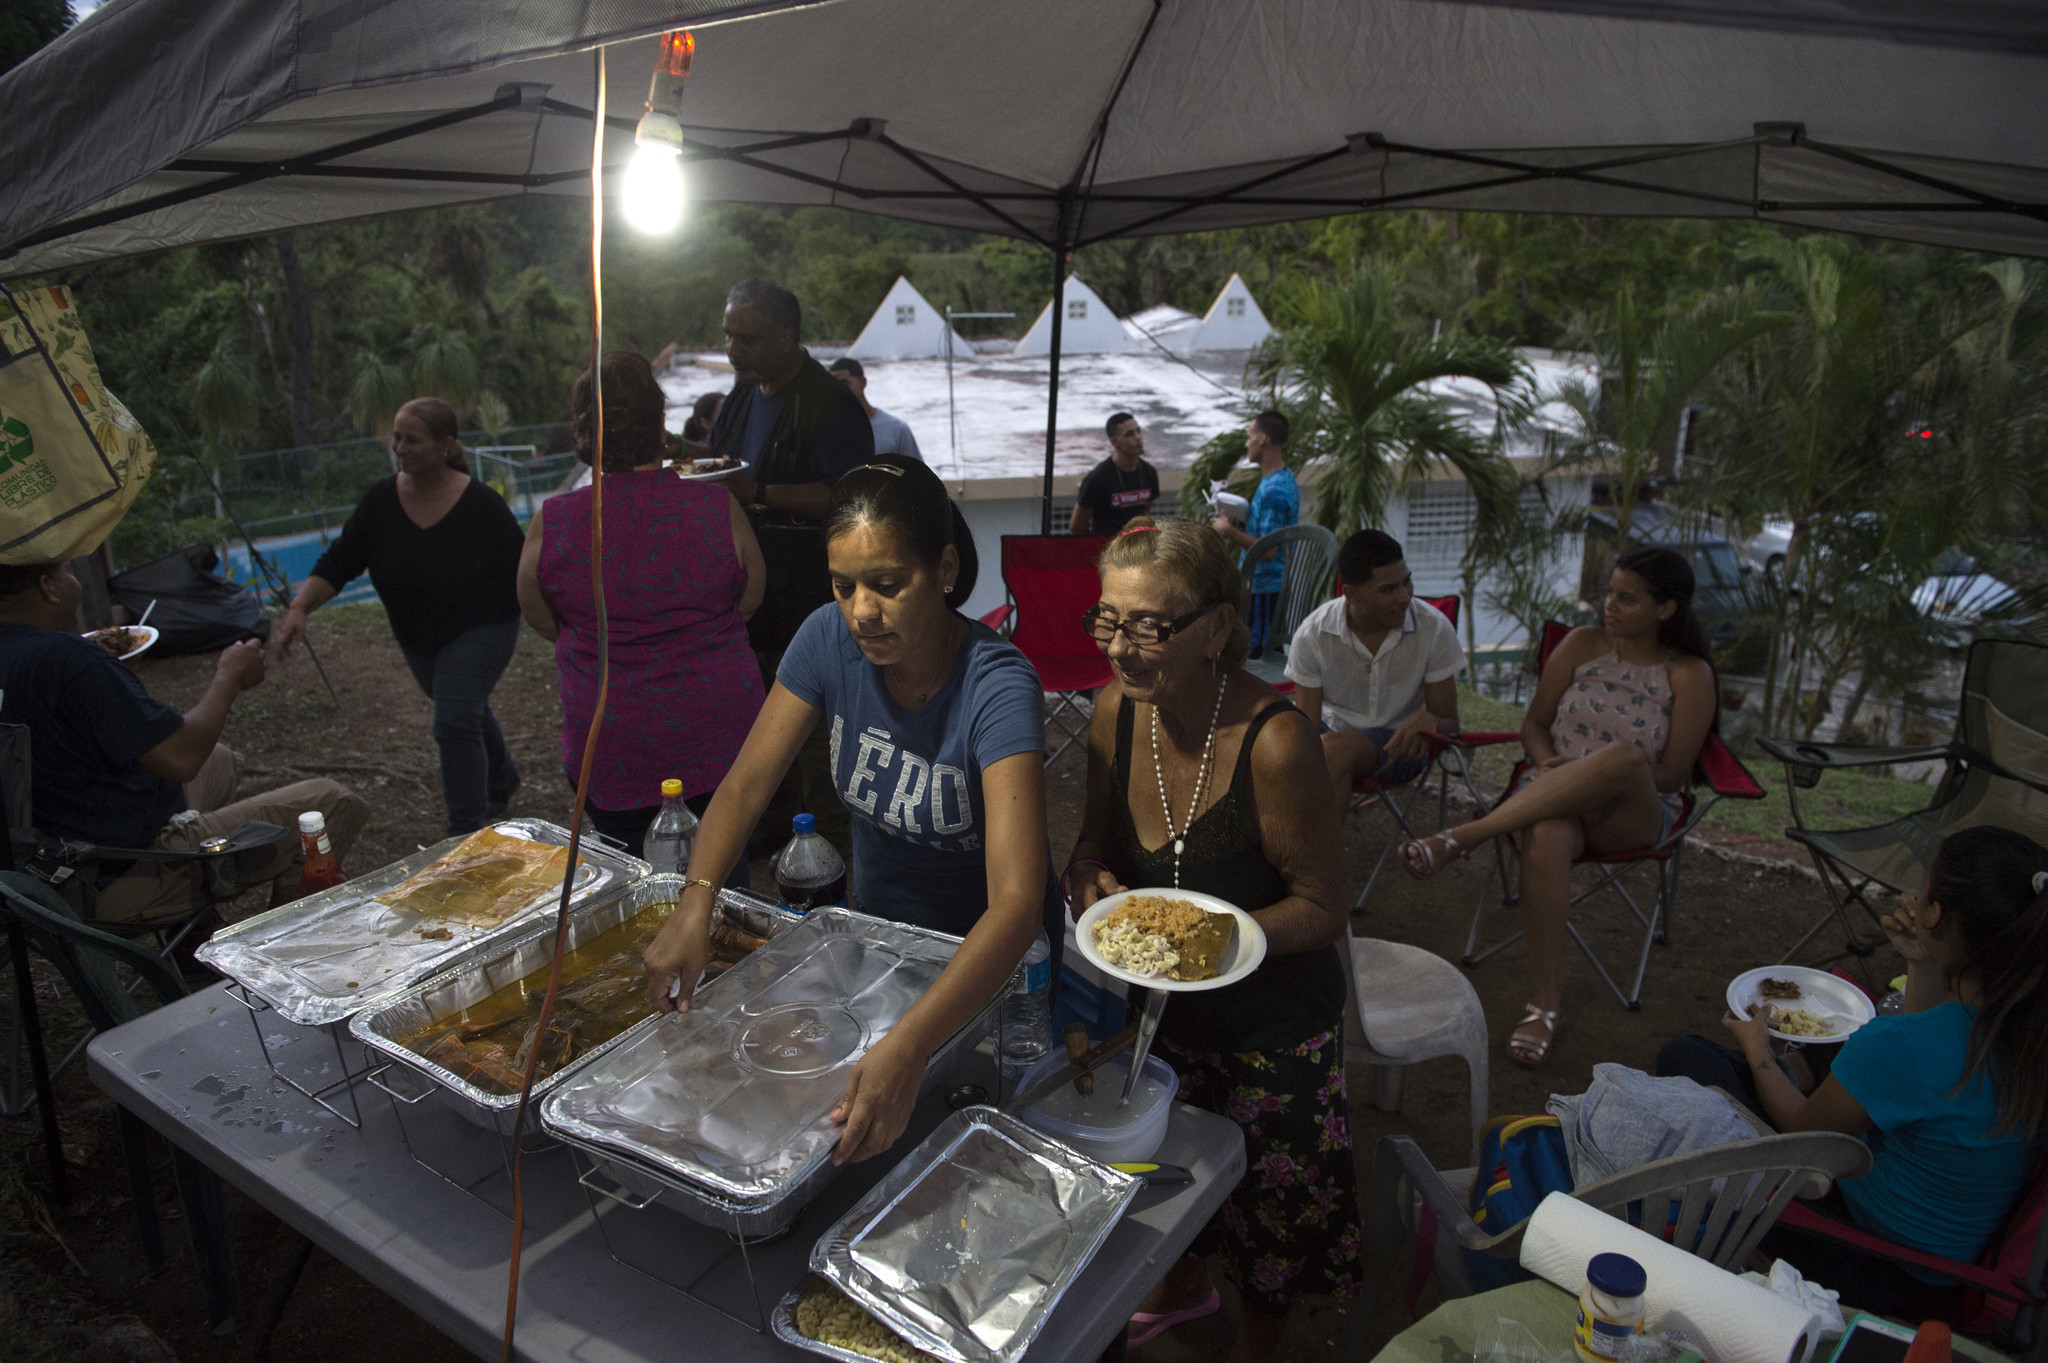 Doris Velasquez Santiago and her grandmother Monserrate Rivera (right) dish out food during a pig roast at their home in Coamo, Puerto Rico. The family threw the celebration to commemorate the completion of the mission carried out by Elliot Matos and his relief team. The family was able to enjoy the luxury of having electricity at the pig roast thanks to the generator brought to them from Connecticut.